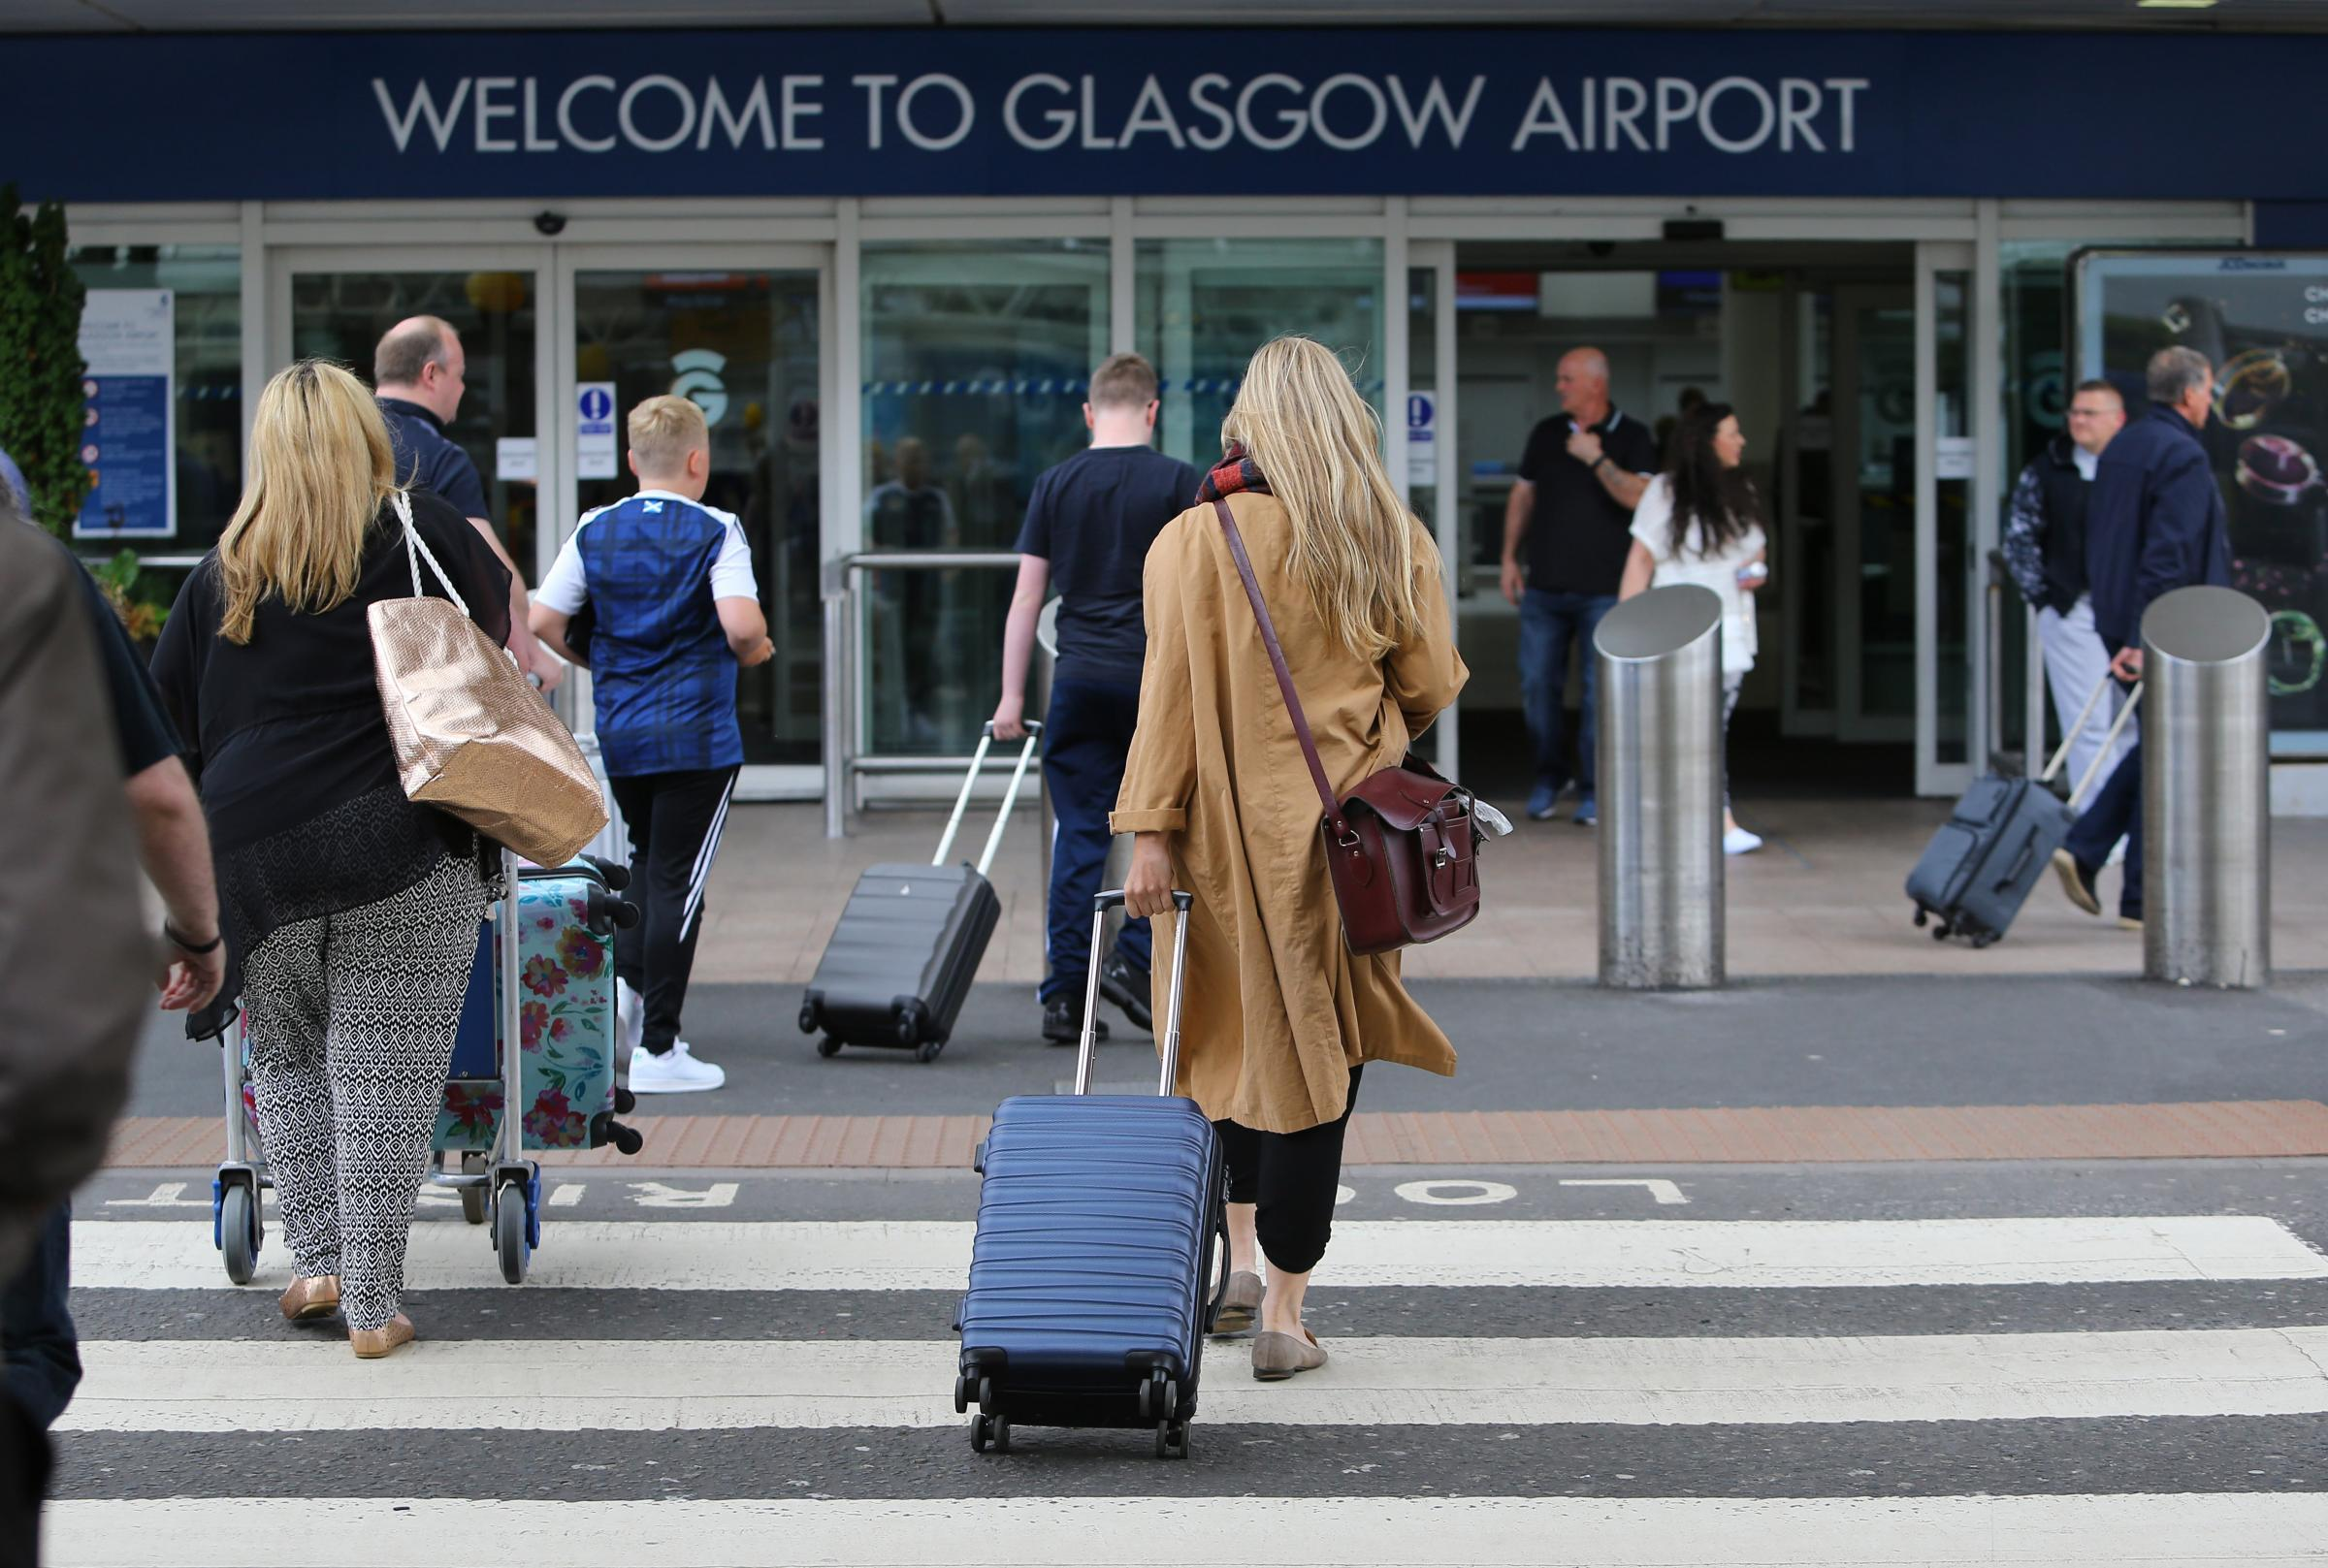 If Glasgow Airport is to have fast and convenient public transport links with the rest of Scotland, it will take several years and a lot of money